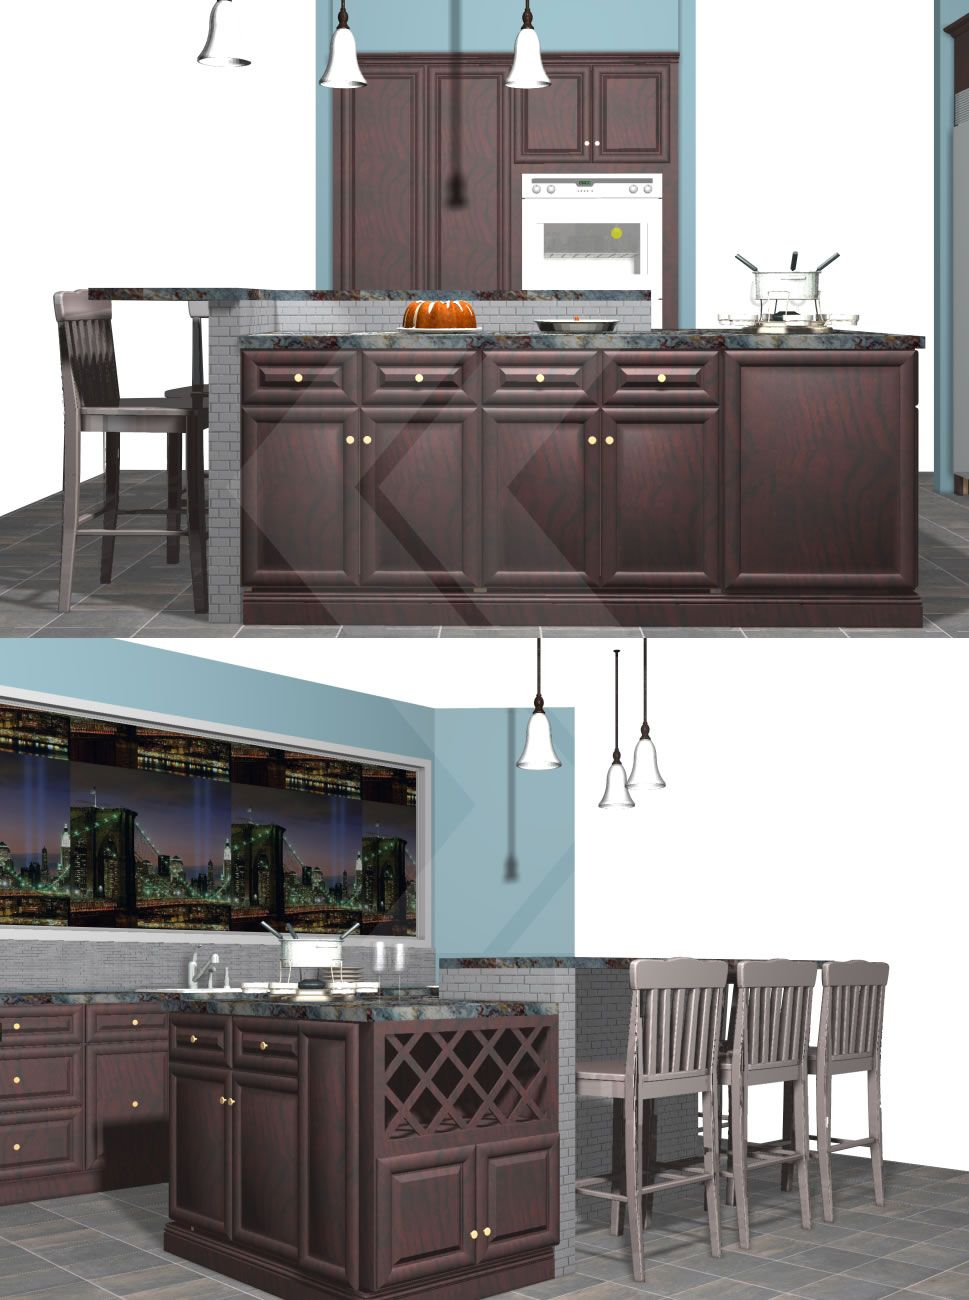 Create A Unique Island, Using Base Cabinets, Wall Cabinets, And A Bar Height  Knee Wall. This Island Offers Plenty Of Storage, A Serving Area, ...